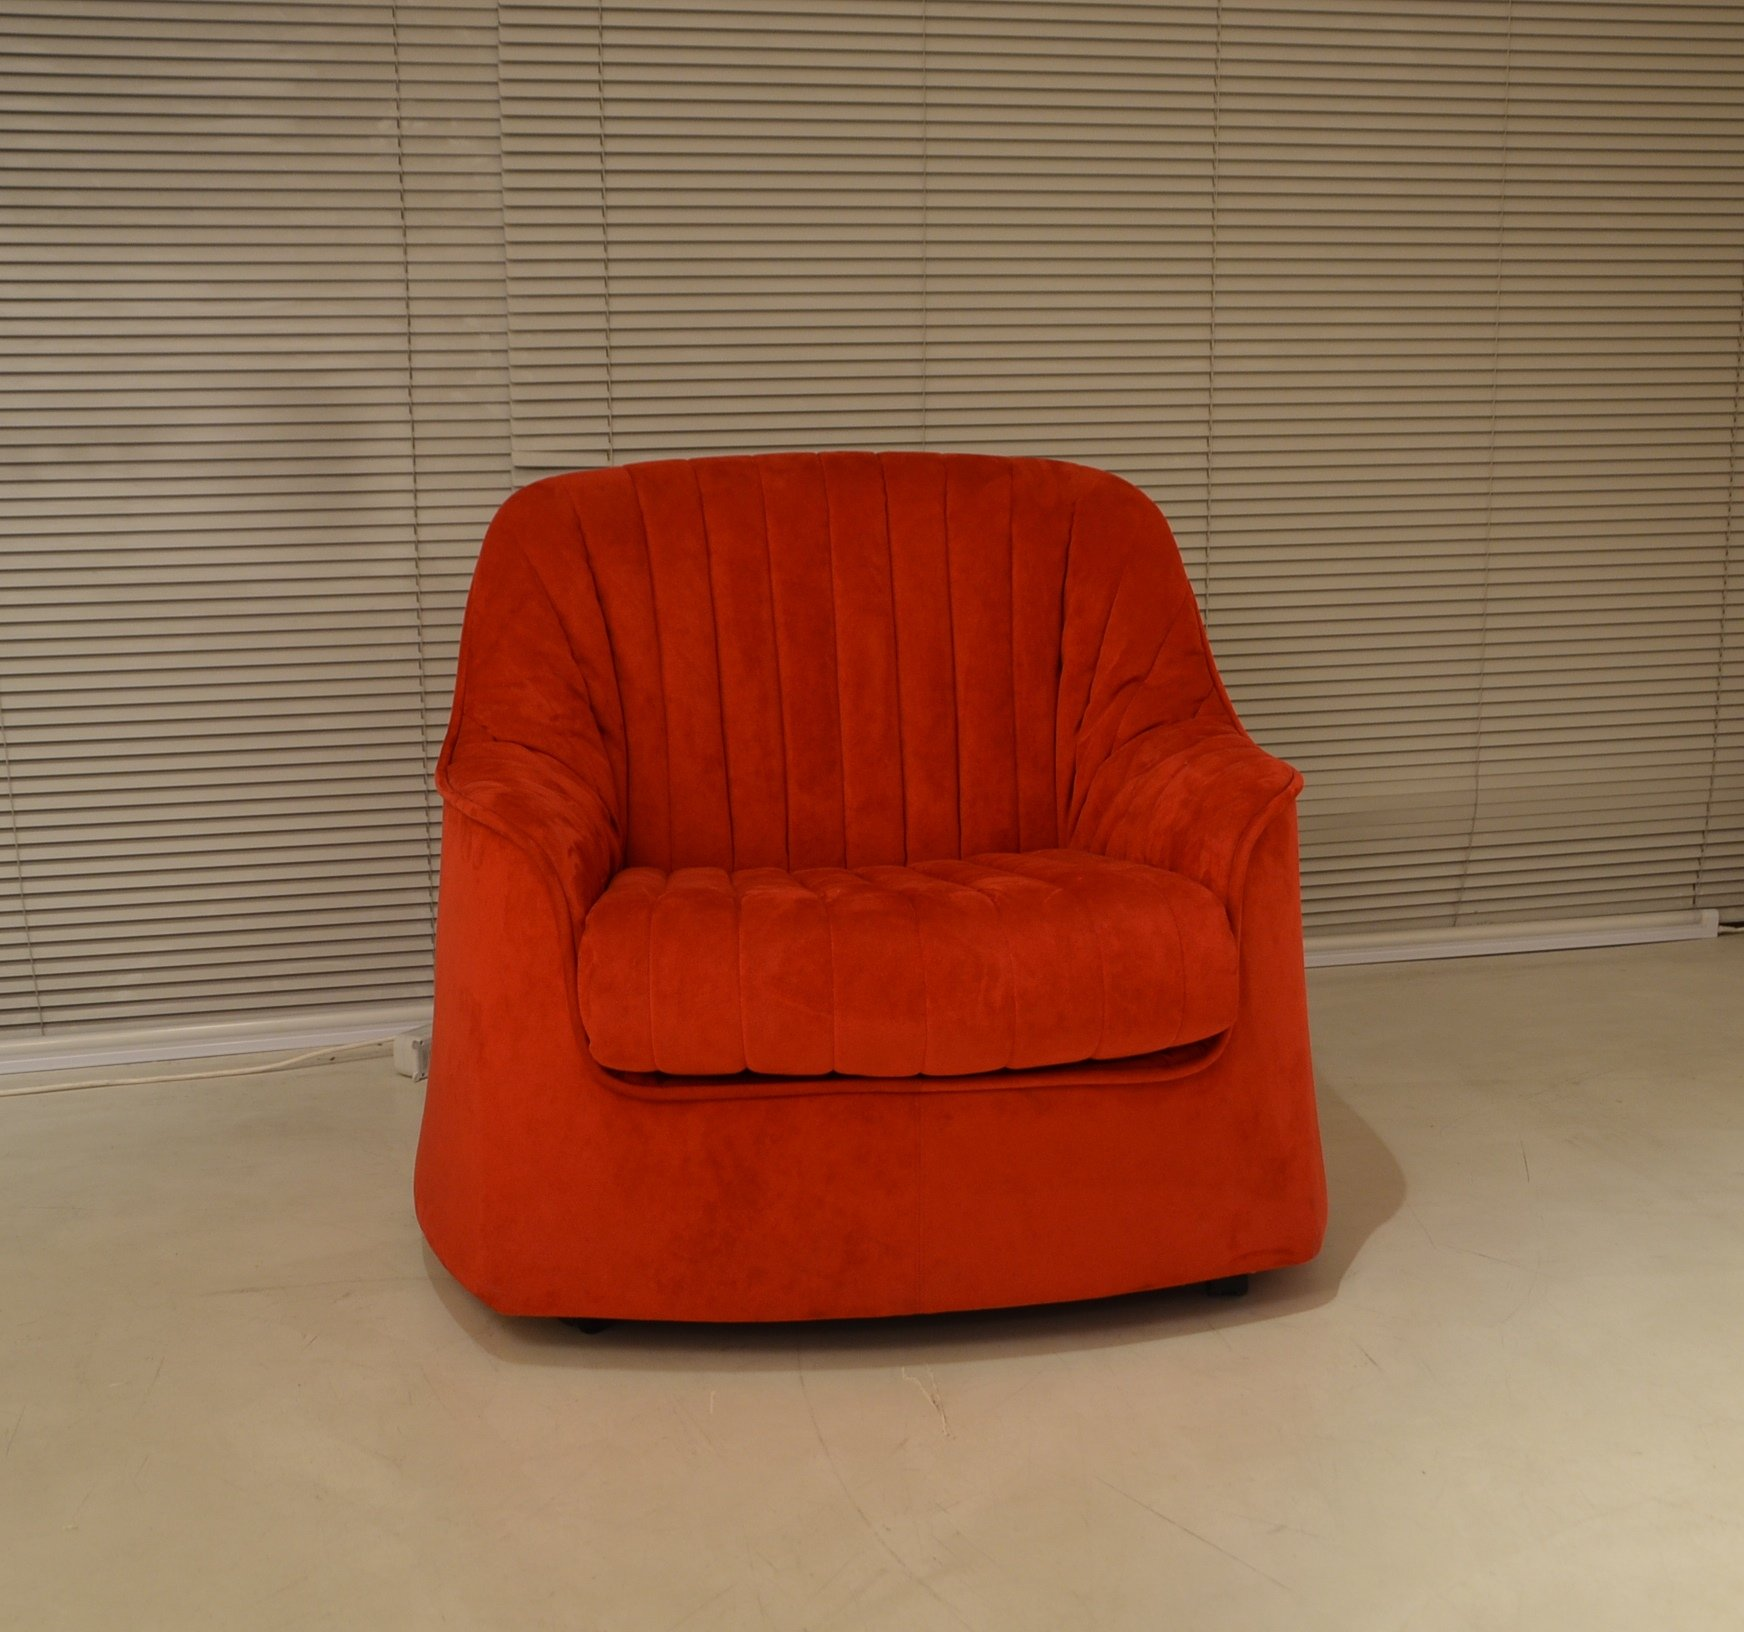 CIPREA design Afra e Tobia Scarpa ORIGINAL Cassina icon made in Italy